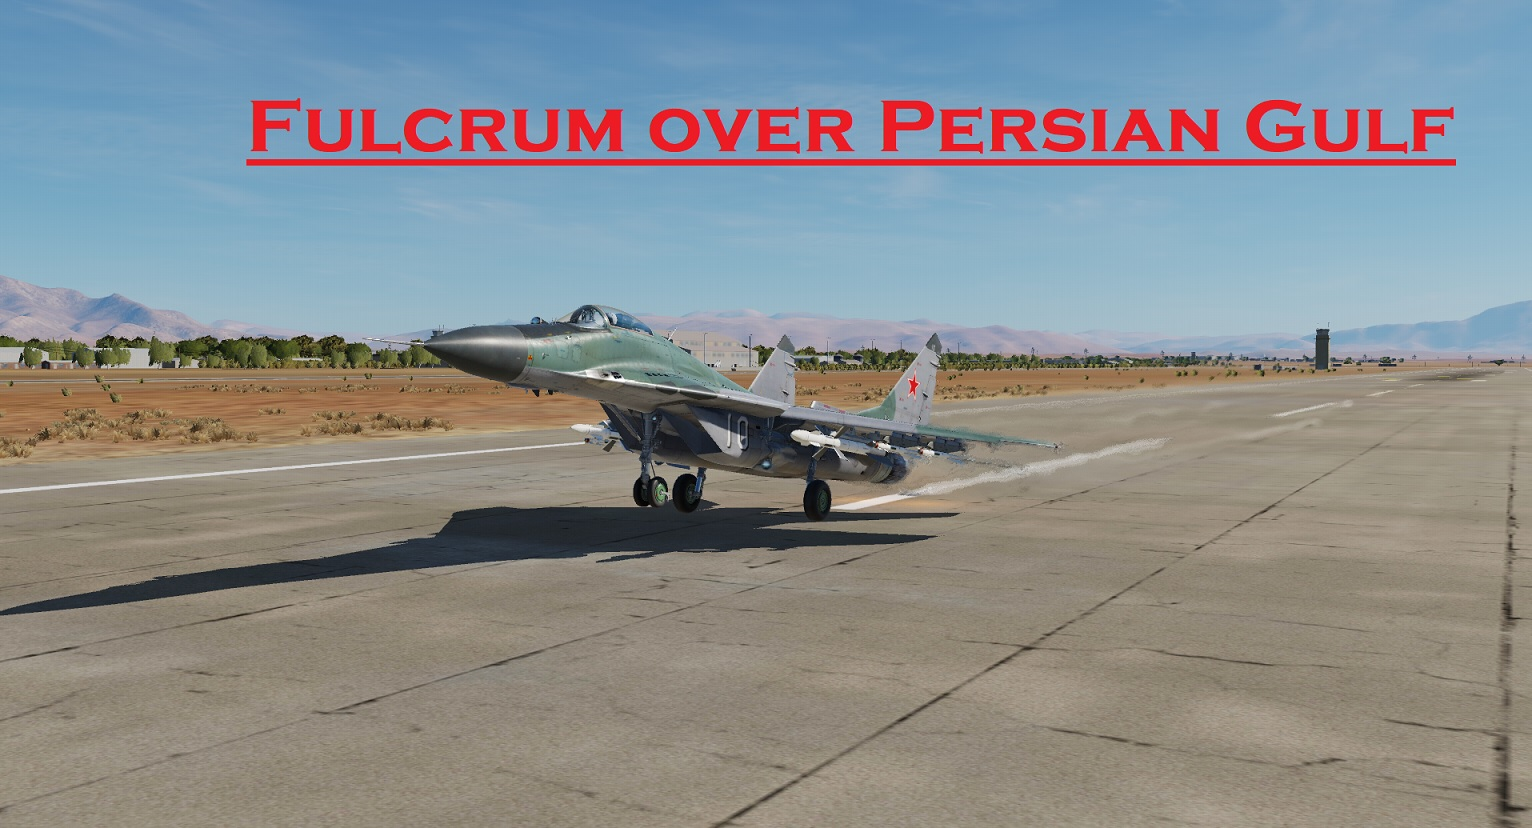 Fulcrum over Persian Gulf using Mbot Dynamic Campaign Engine